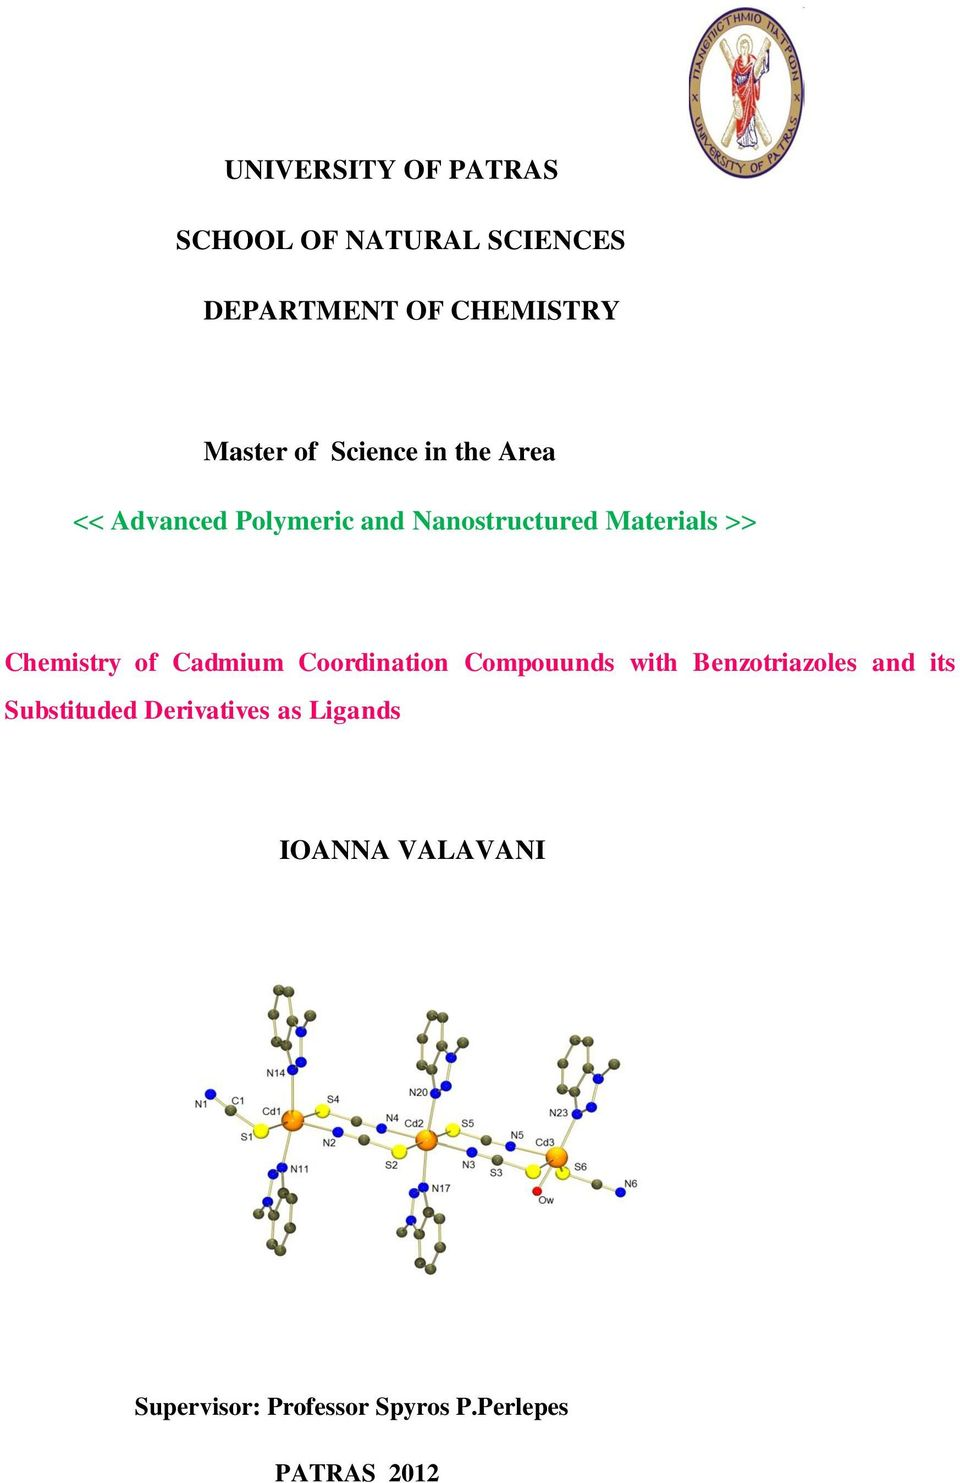 Chemistry of Cadmium Coordination Compouunds with Benzotriazoles and its